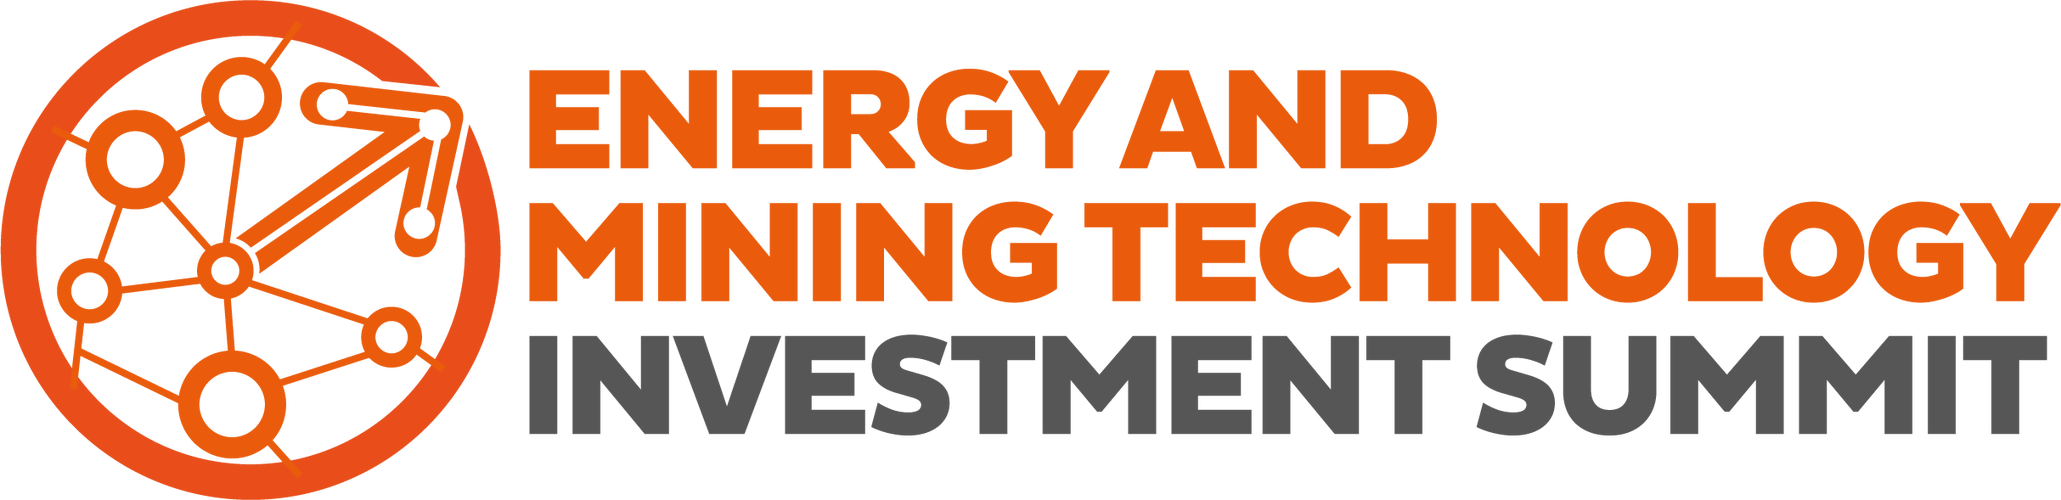 Energy and Mining Technology Investment Summit